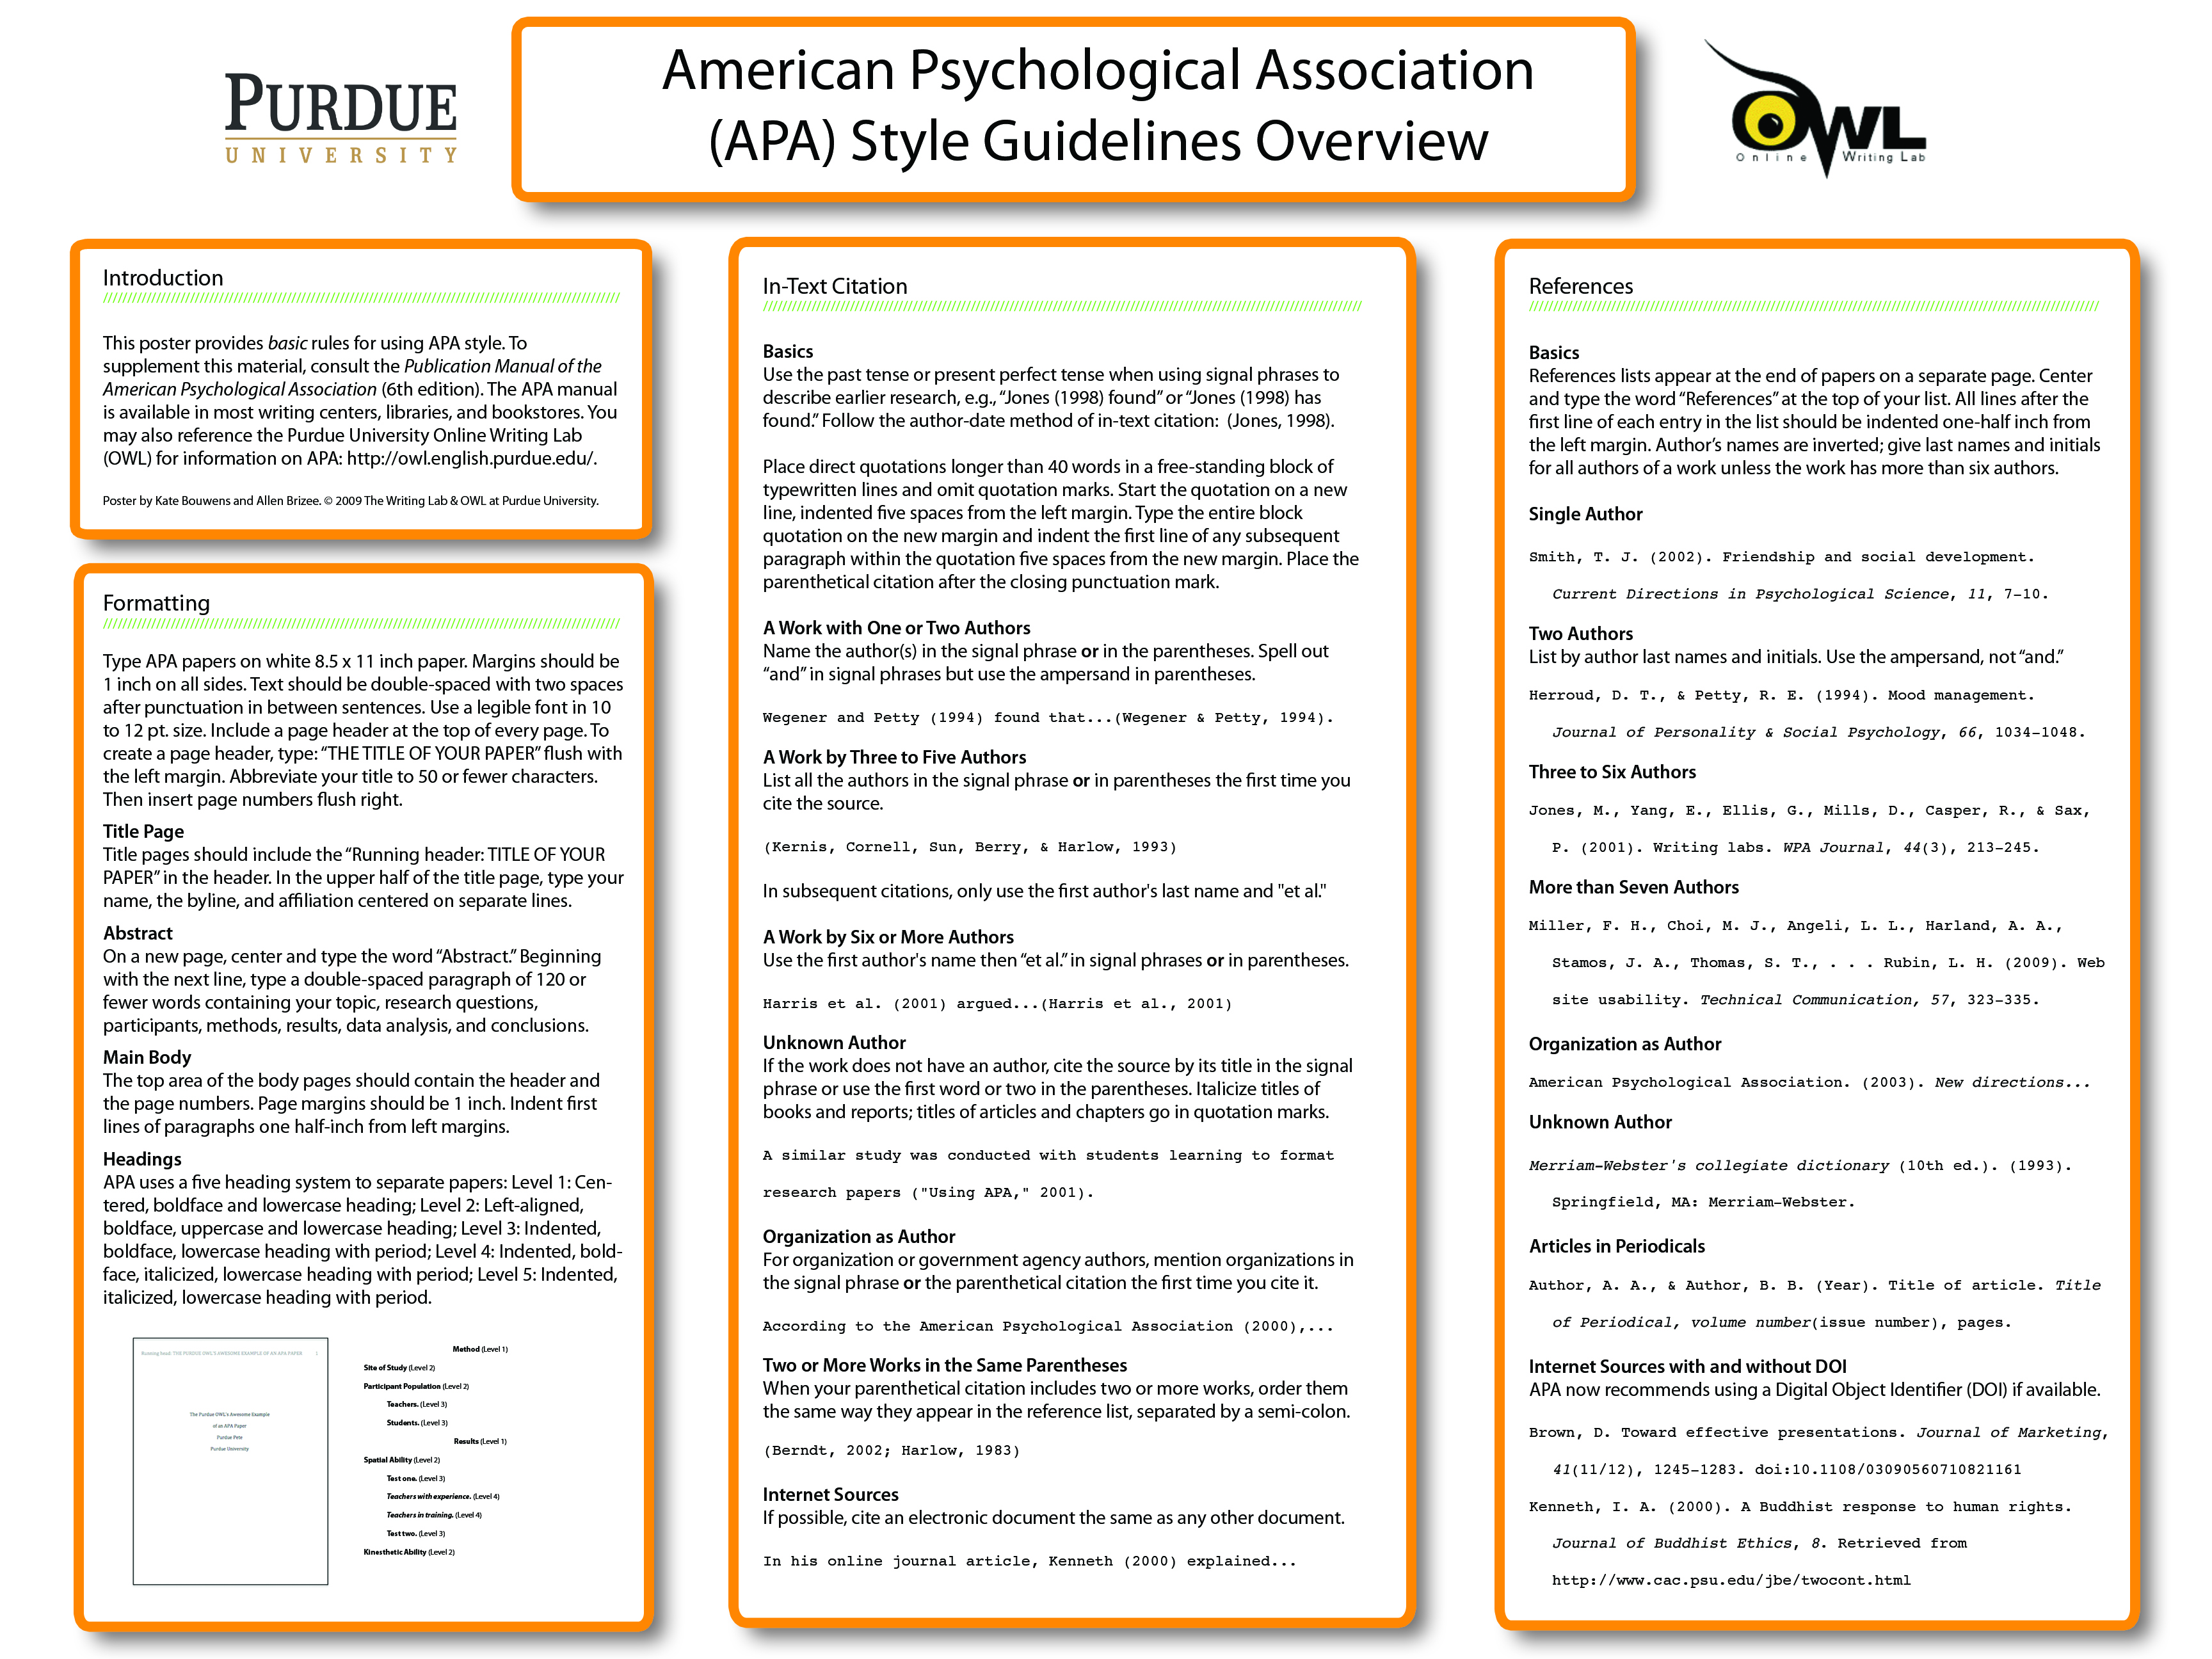 020 Apaposter09 Apa Citation Online Research Best Paper Article Full